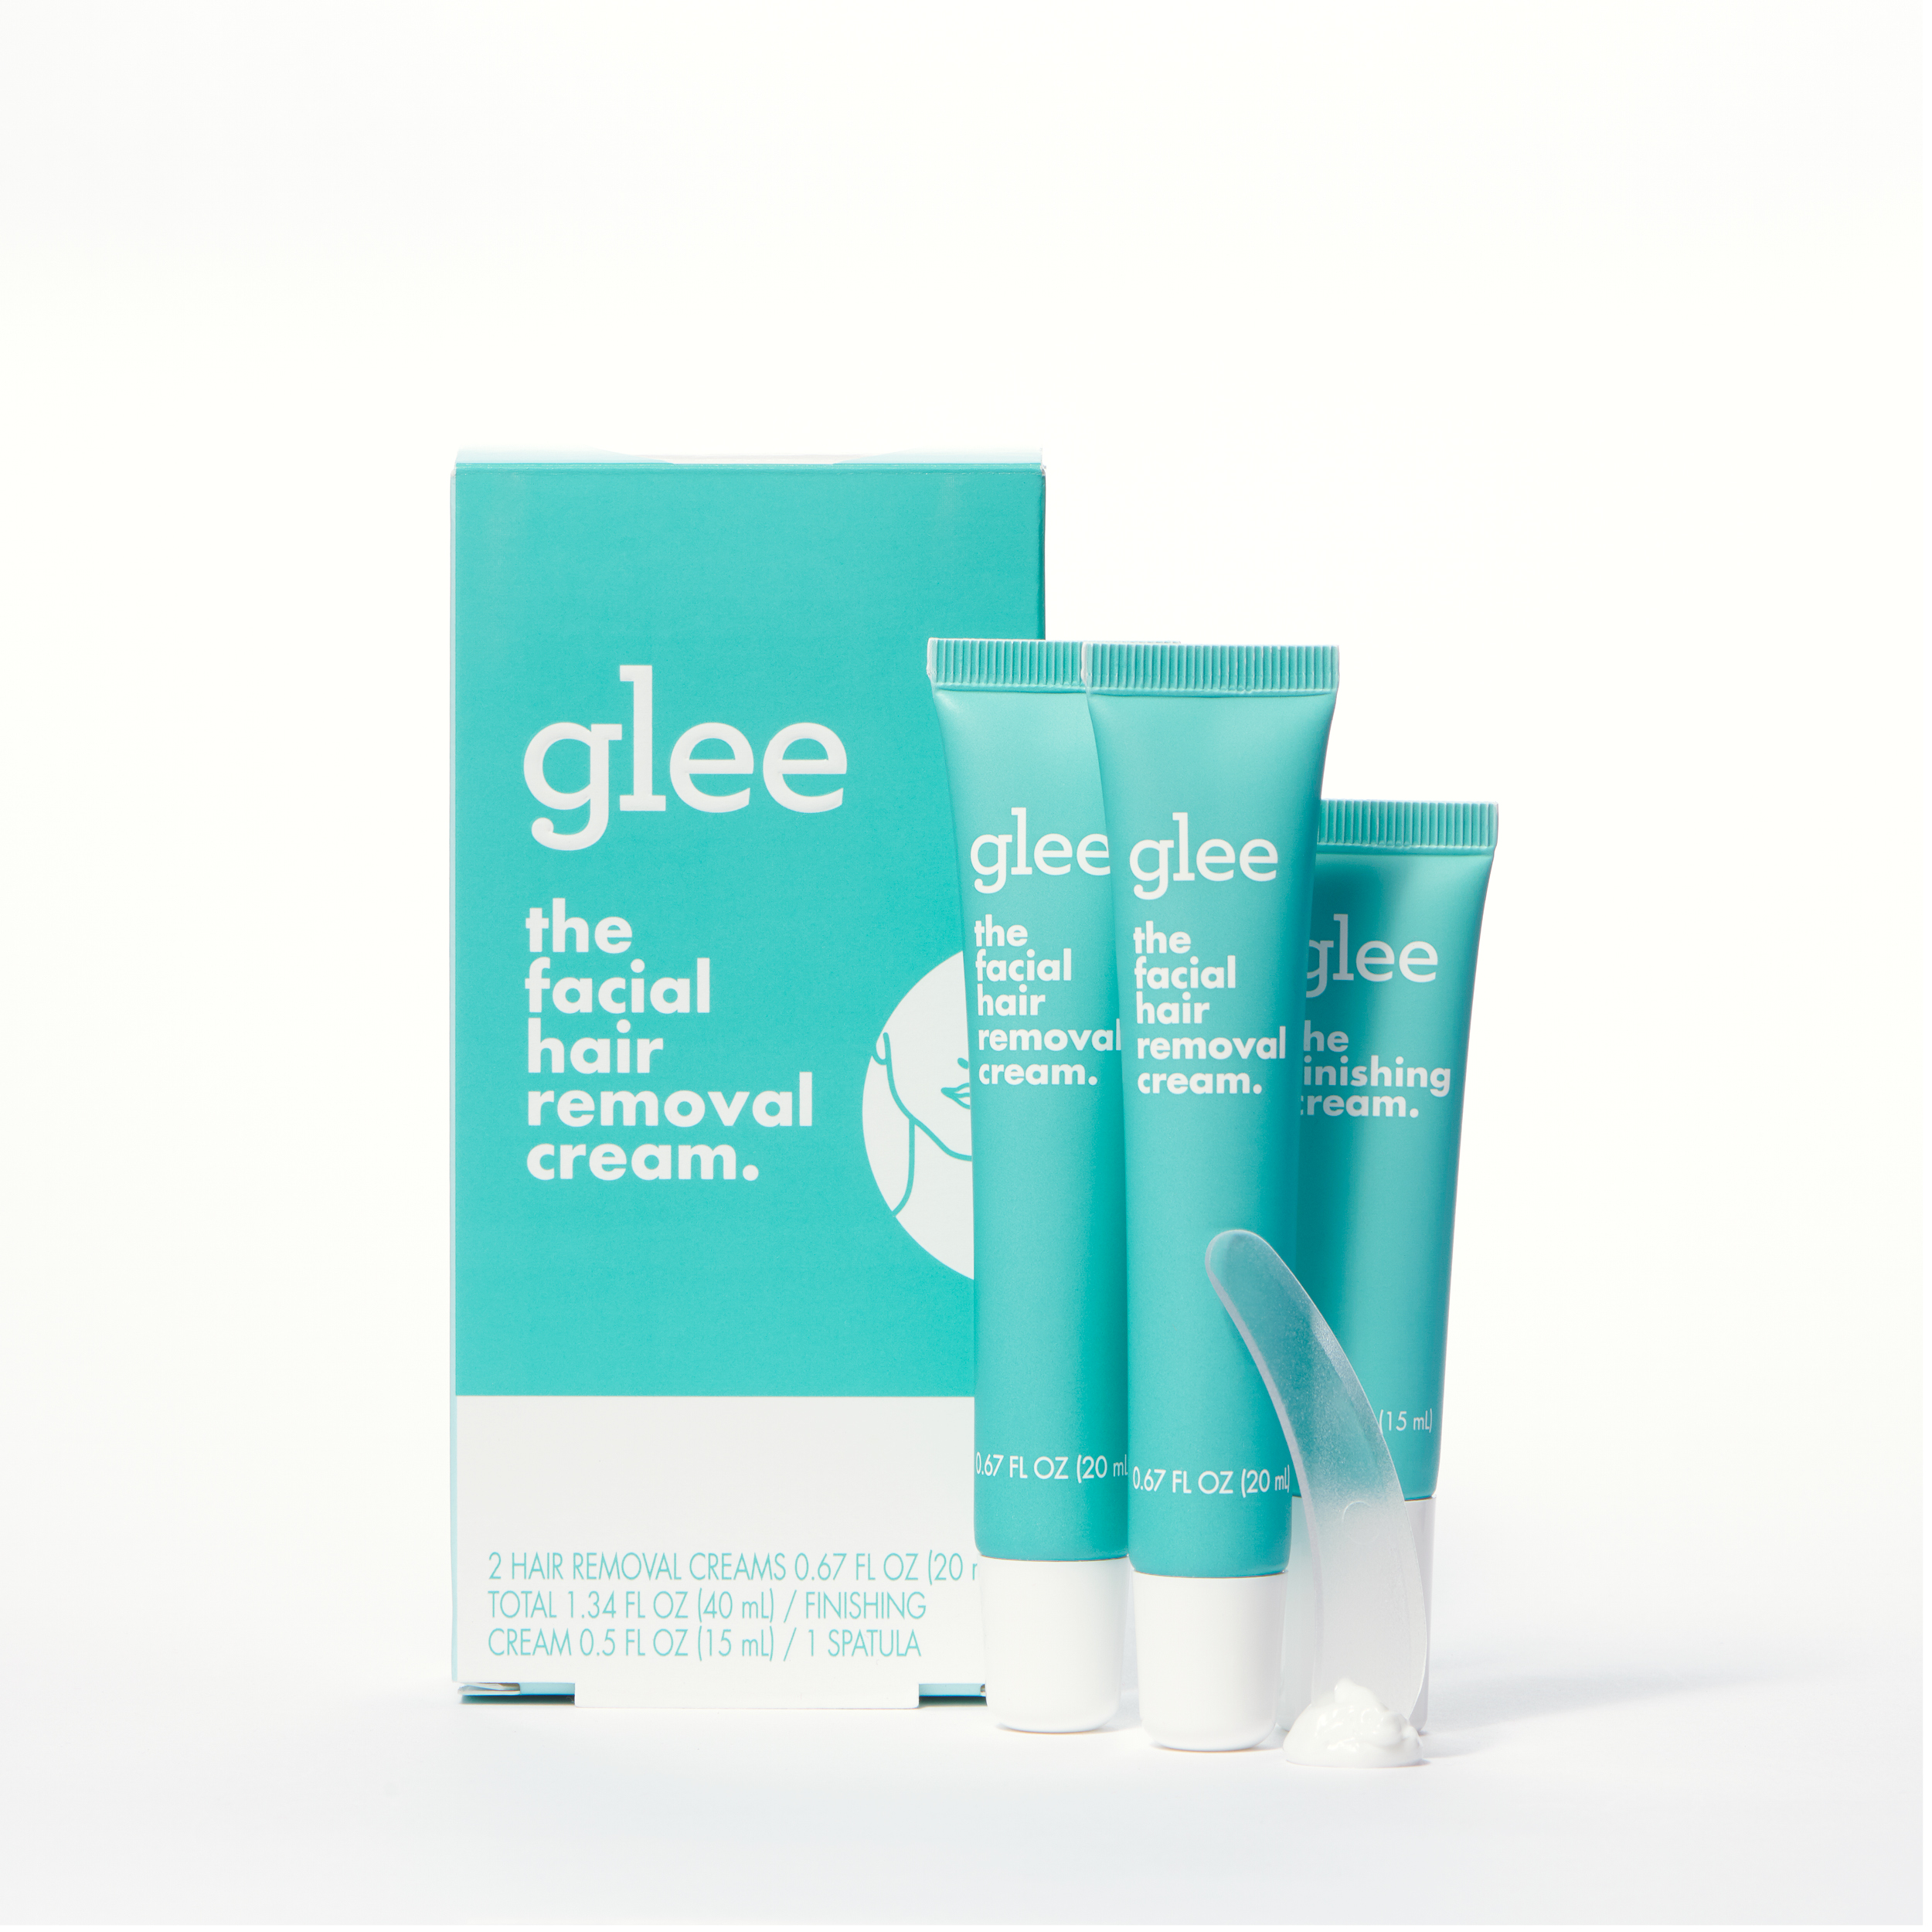 Glee Facial Hair Removal Cream Kit For Women Depilatory Walmart